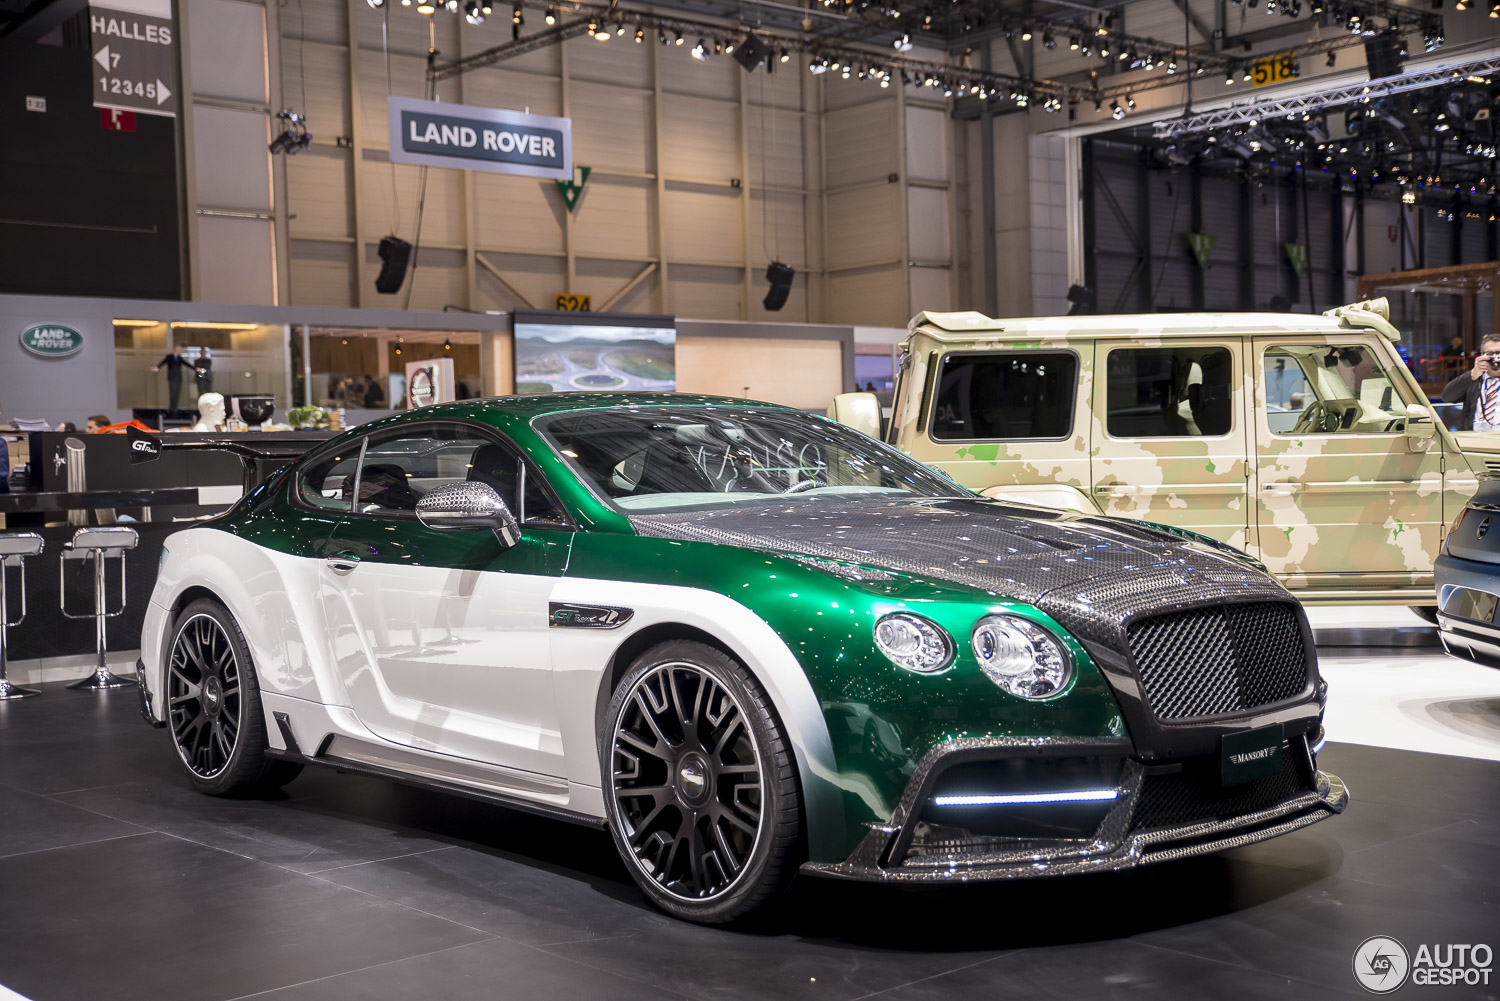 Race Cars For Sale >> Geneva 2015: Mansory GT Race